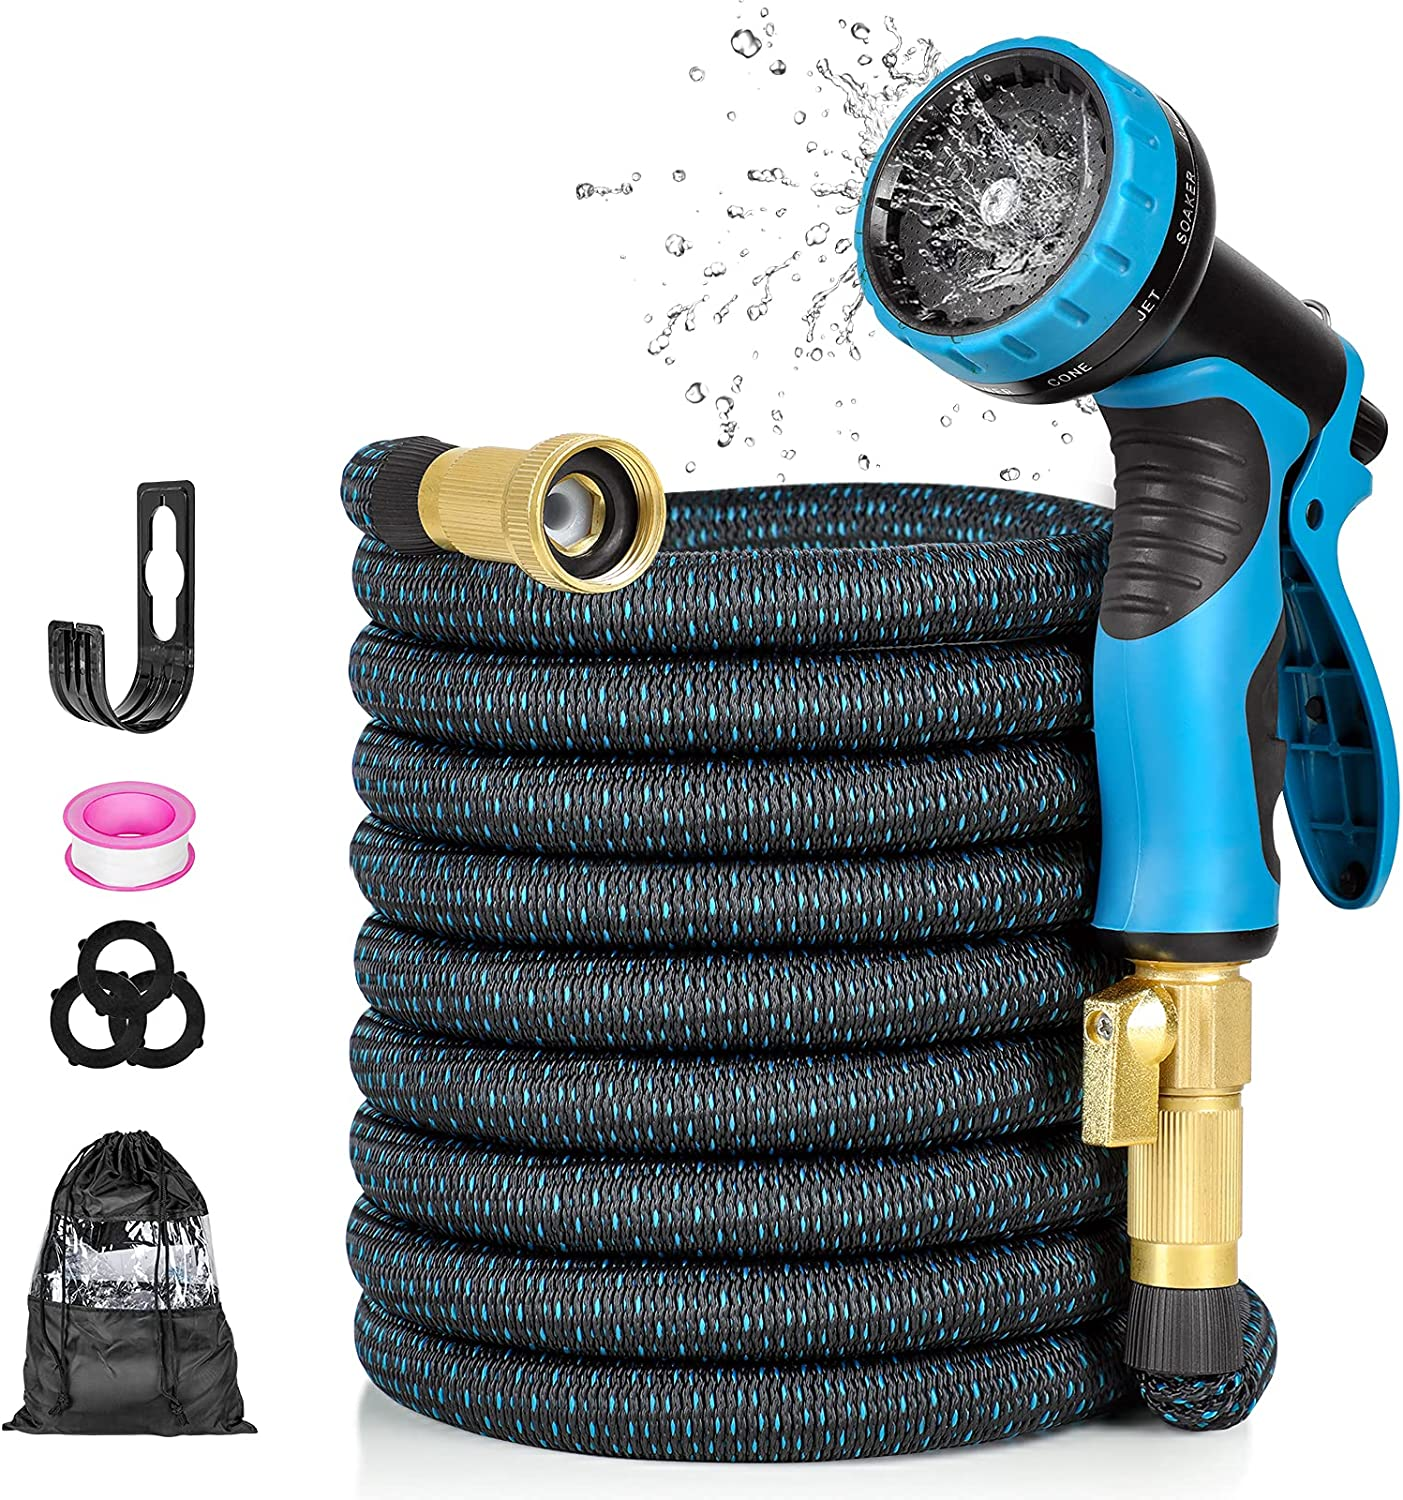 Nuaer Garden Hose, 50ft Expandable Water Hose, Flexible Water Hose With 3 Layer Latex Core 3/4